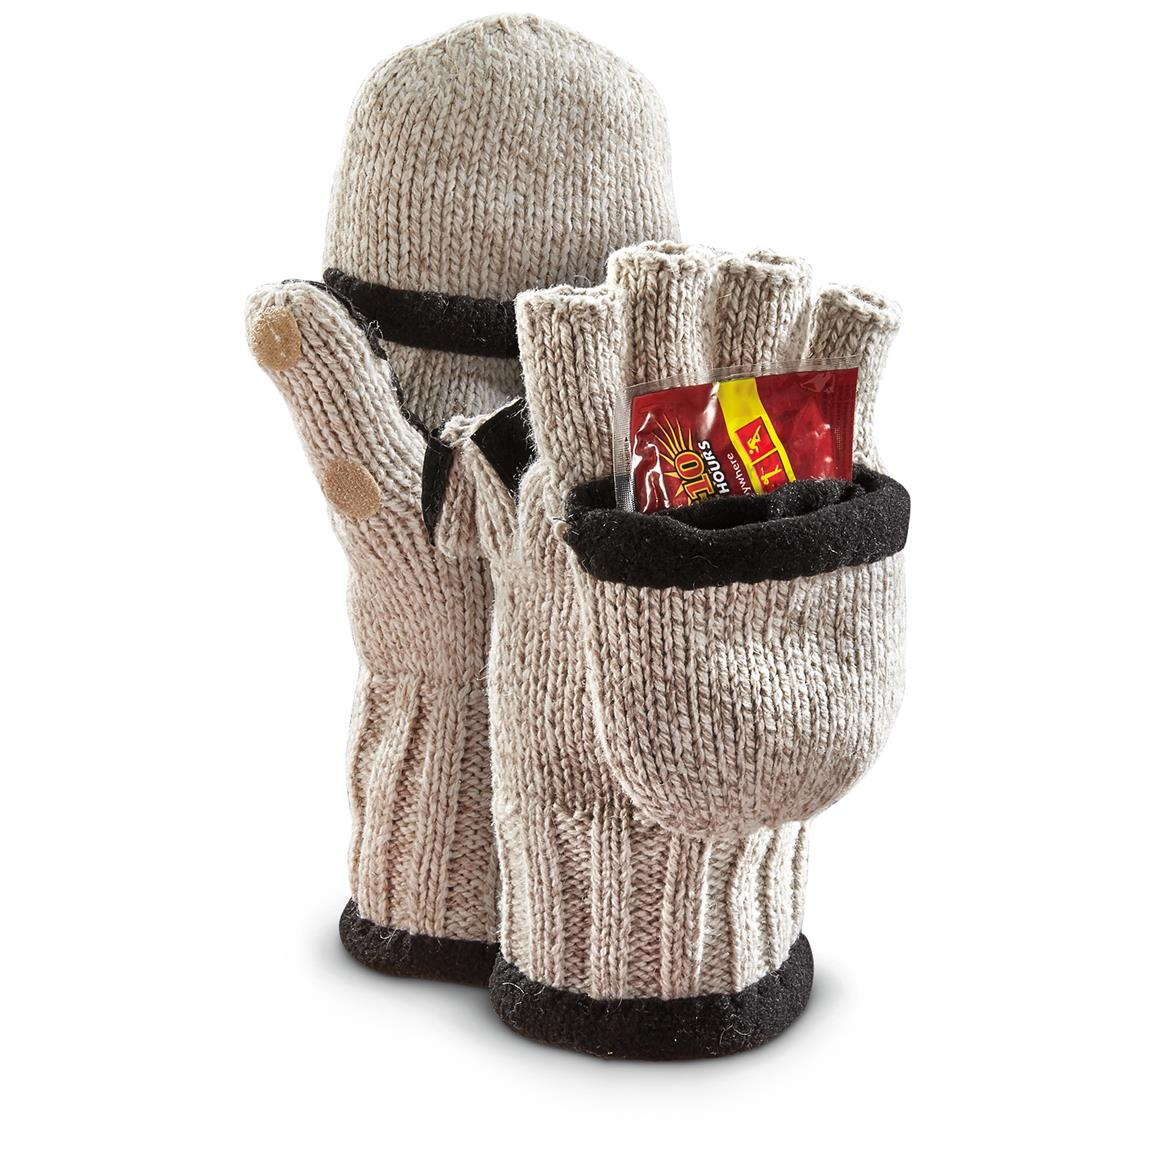 Includes a pair of warming packets to get your hands cozy right out of the box!